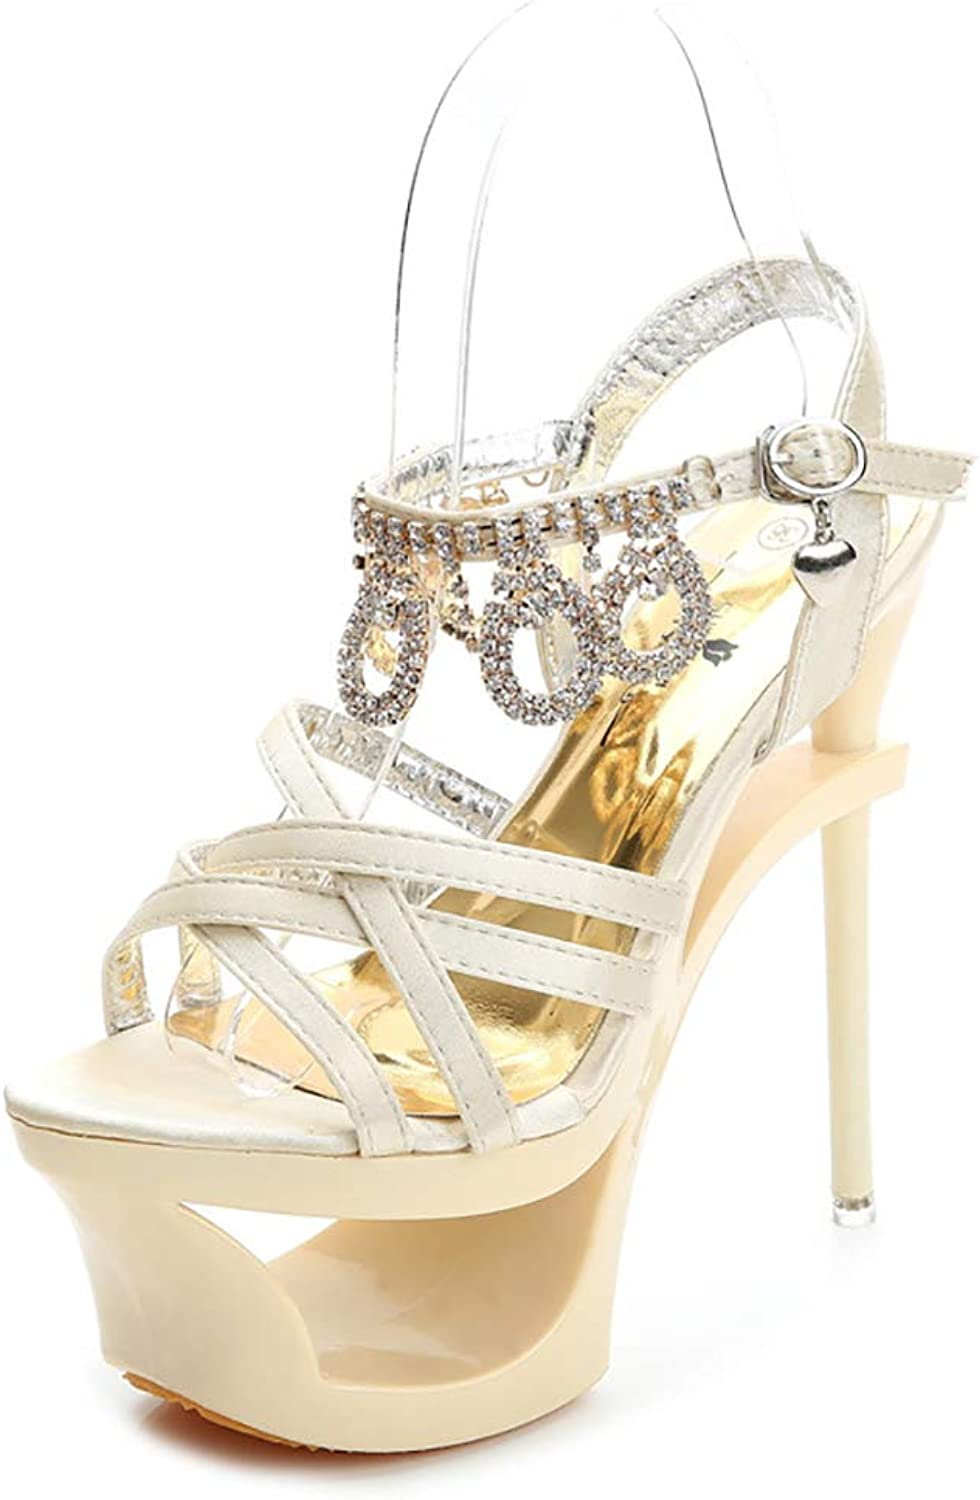 Mzq-yq Damen Plattform Riemchen Stiletto, Satin Strass Damen High Heel Cross Over Knchelriemen Sandalen Schuhe